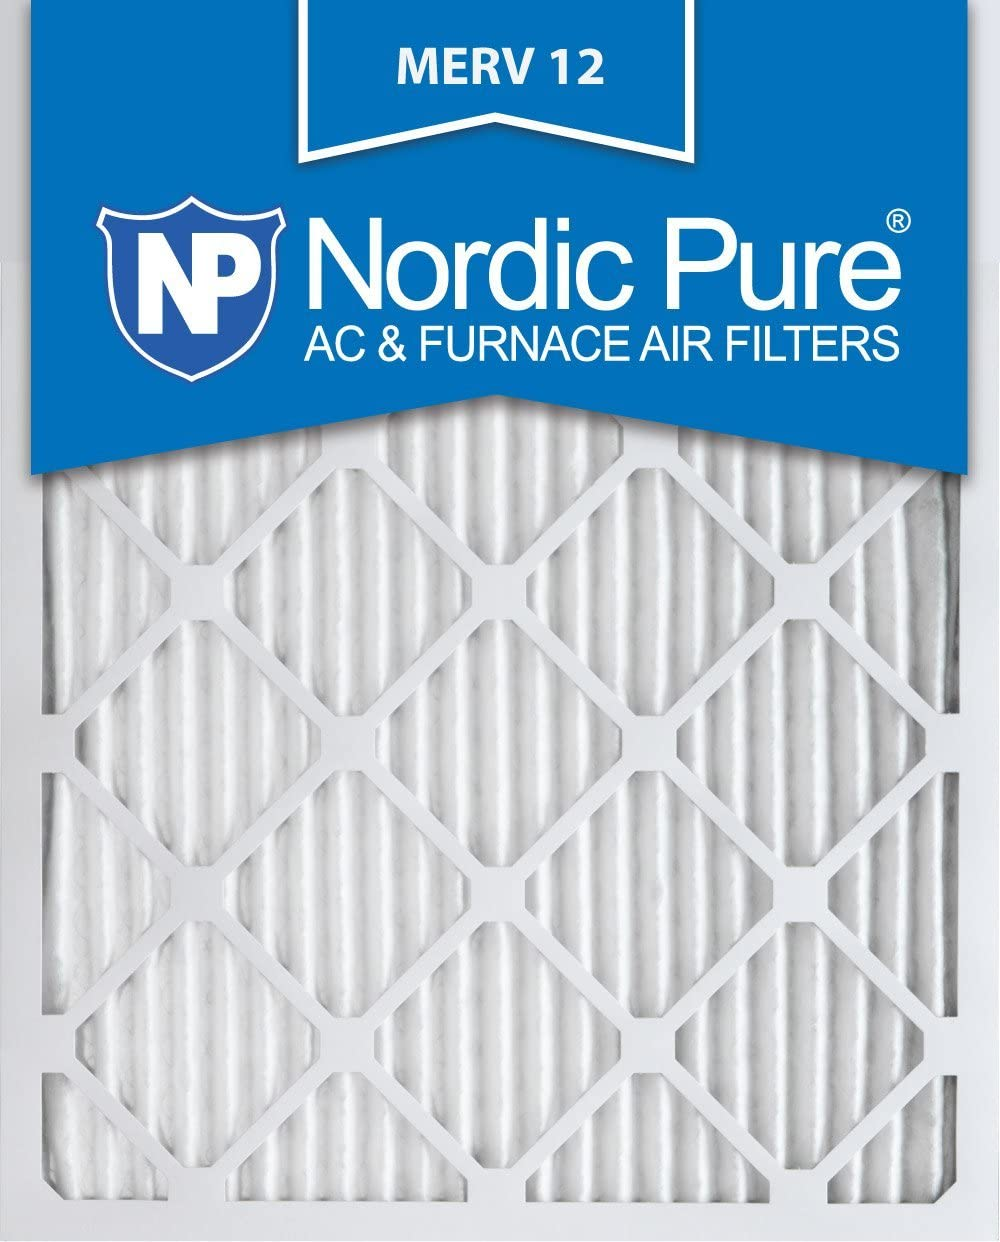 Nordic Pure 25x25x1 MERV 12 Pleated AC Furnace Air Filters 3 Pack